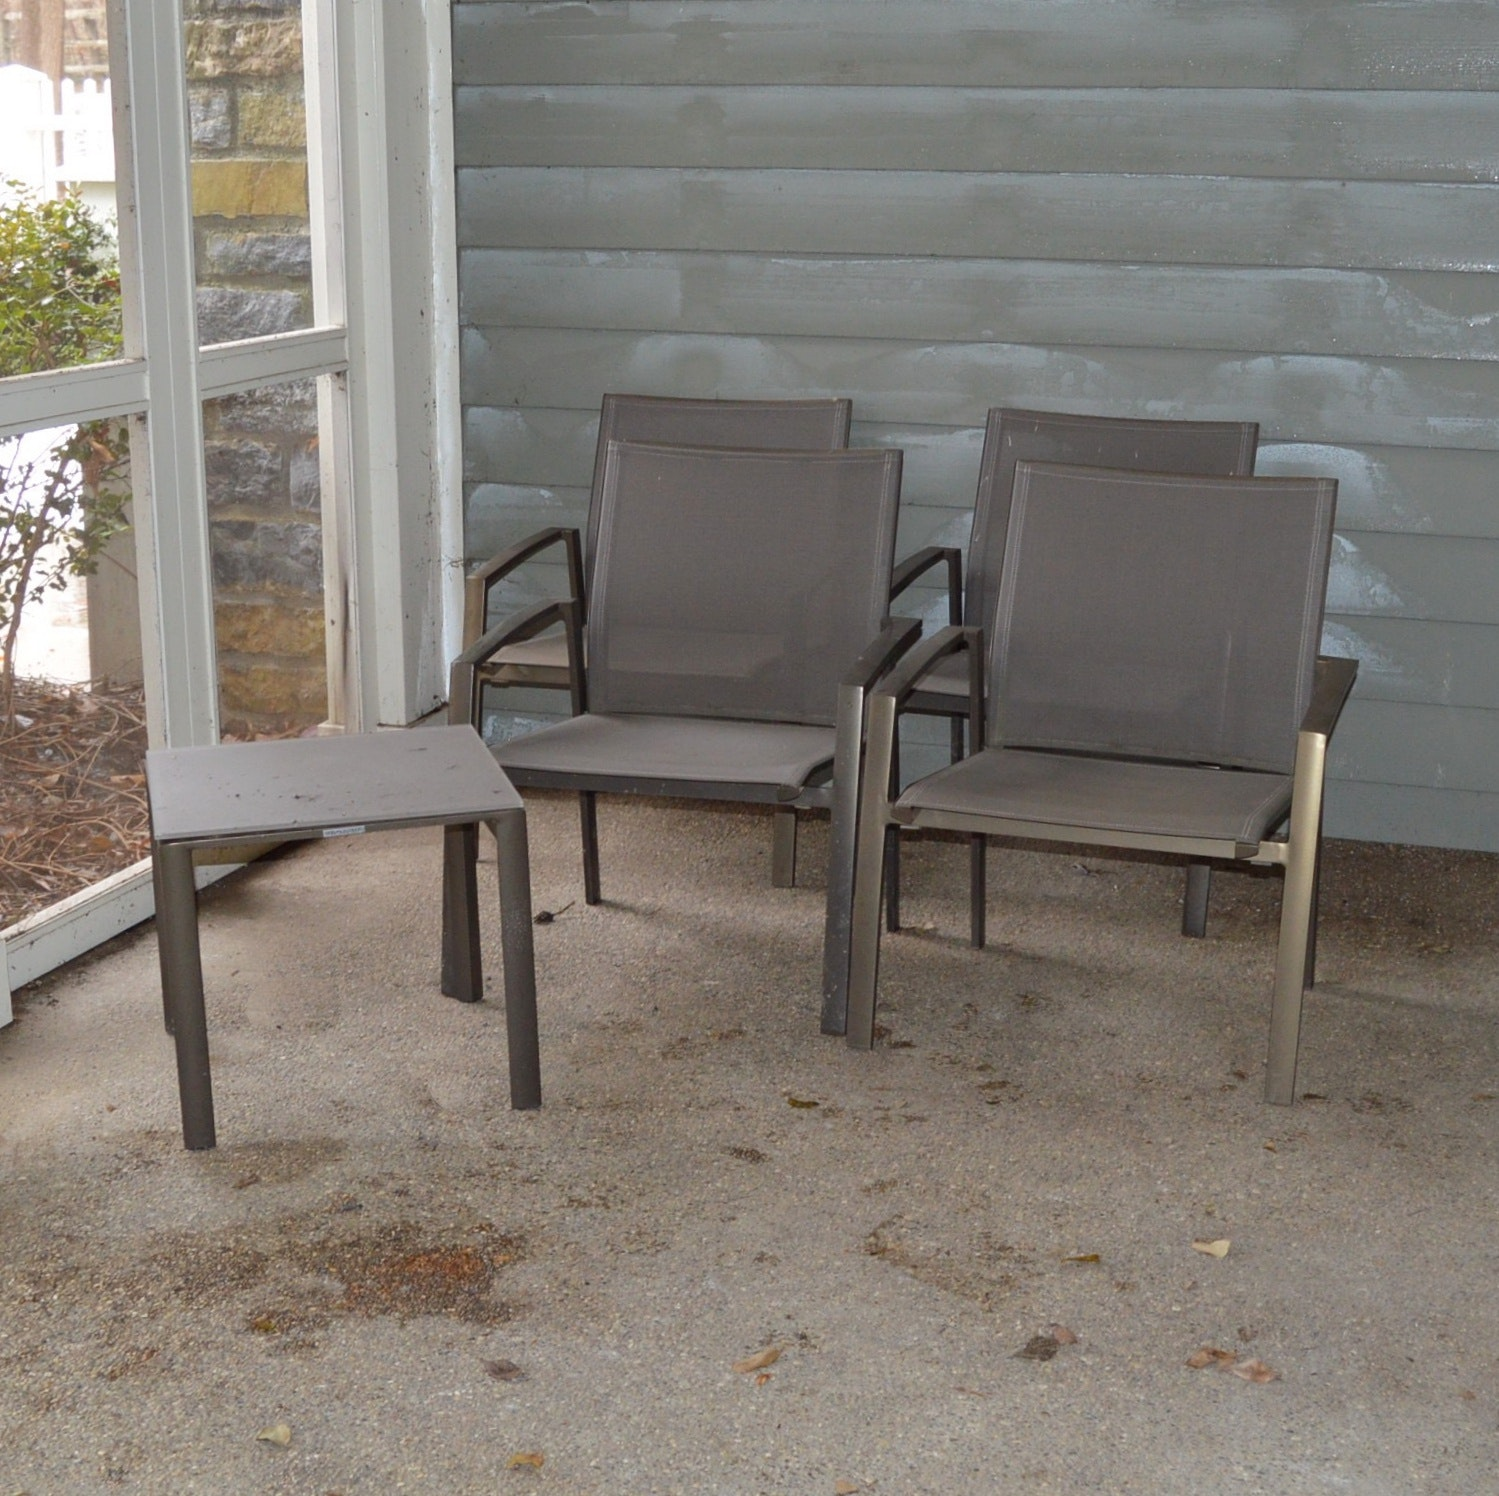 Frontgate Patio Chairs and Side Table